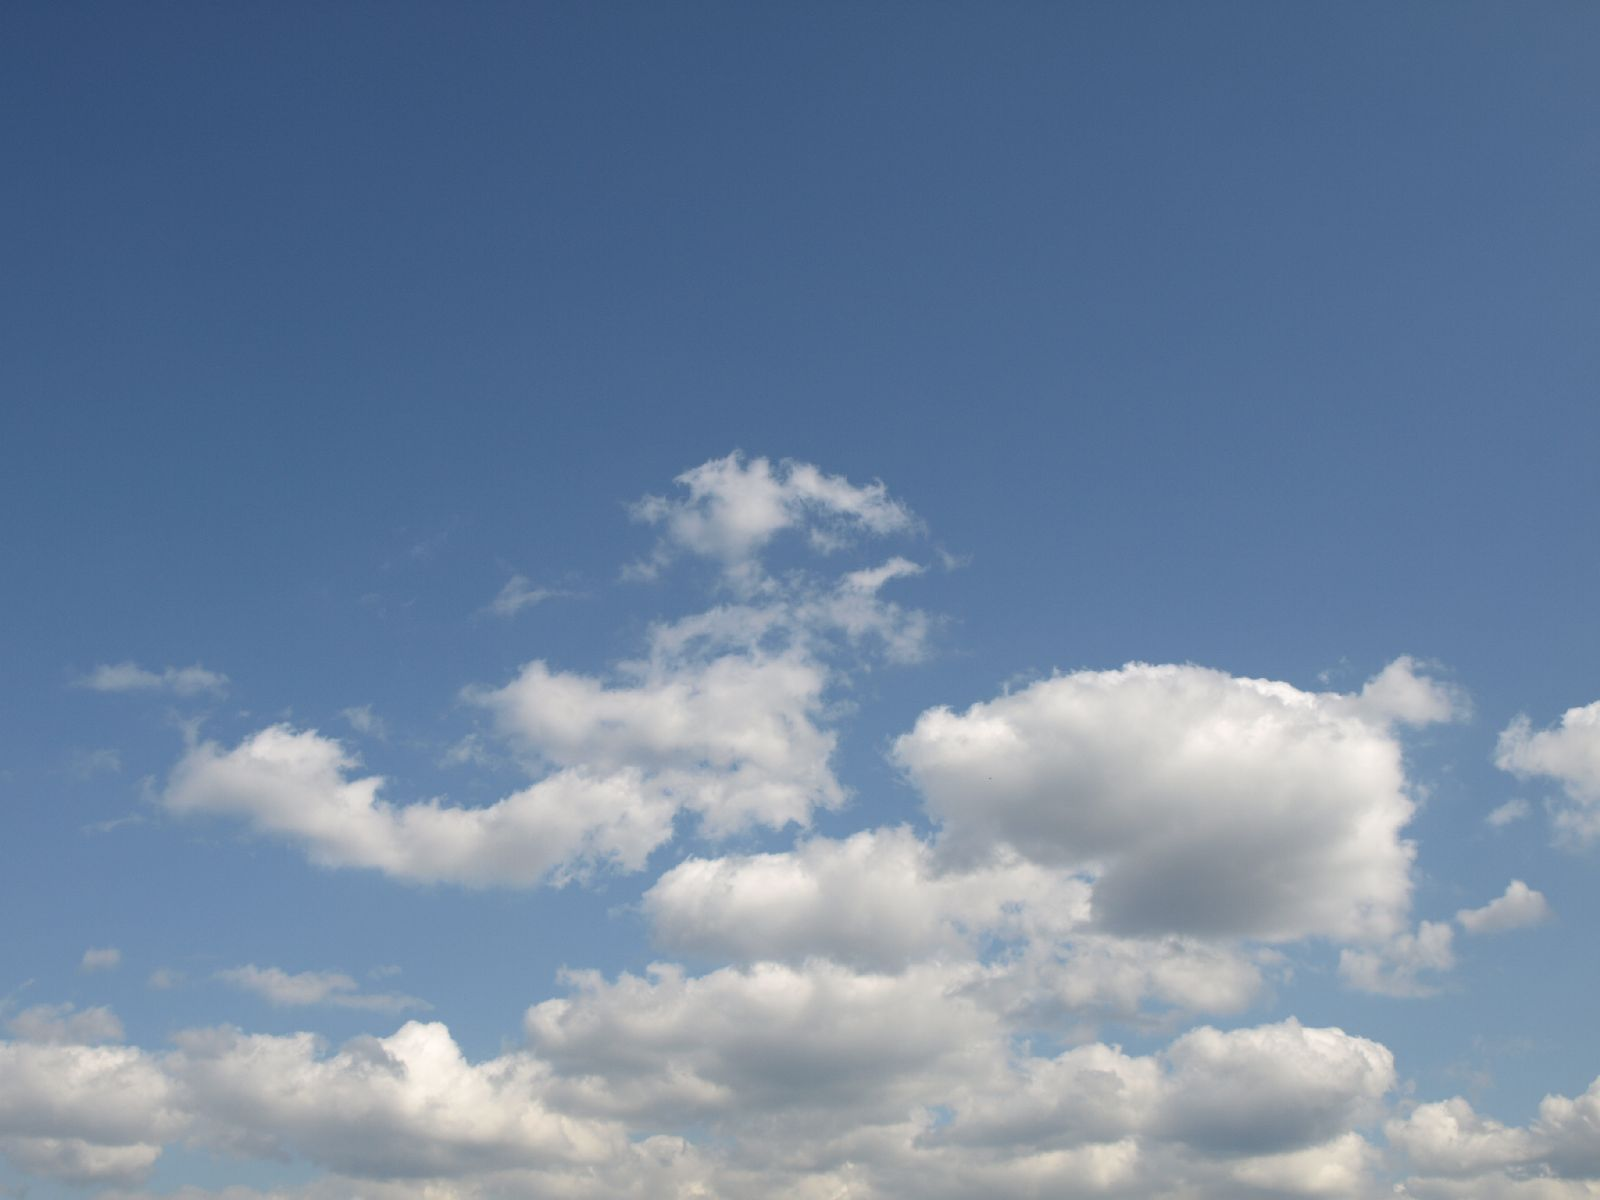 Sky_Clouds_Photo_Texture_A_P4241753